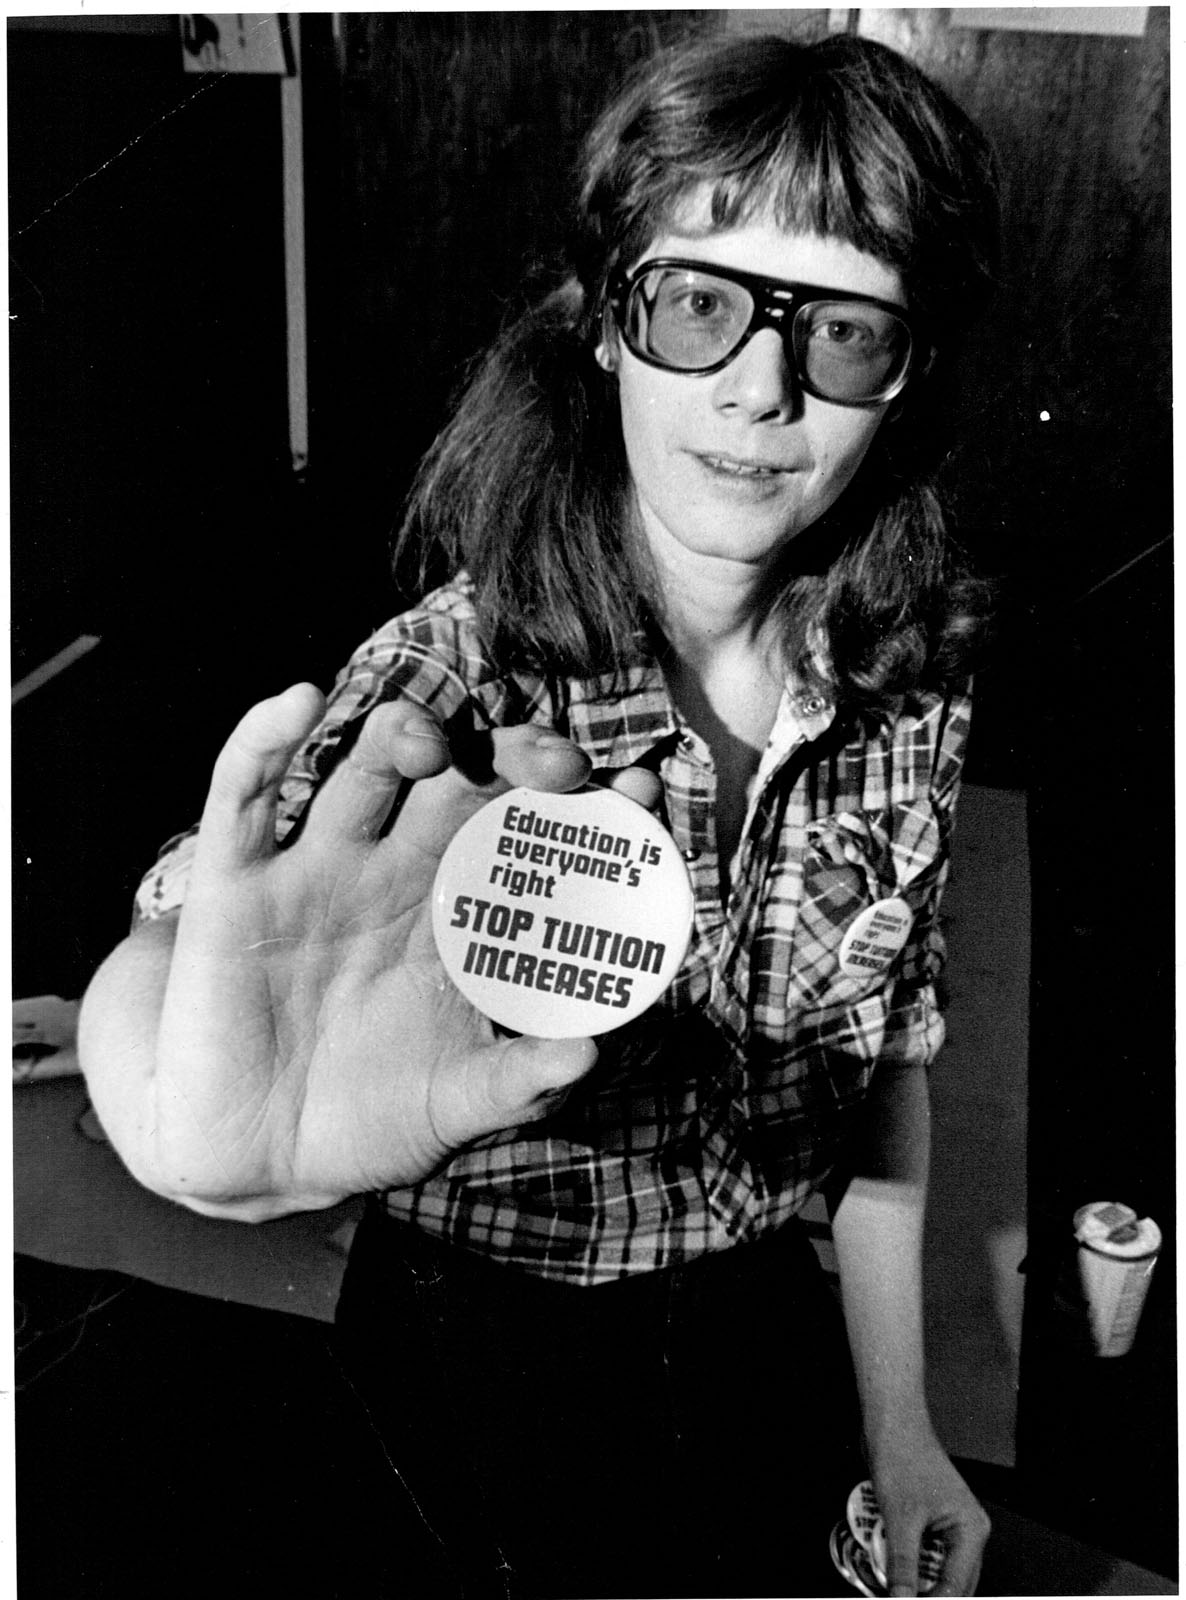 Lake Sagaris hands photographer tuition fee protest button Feb 1977